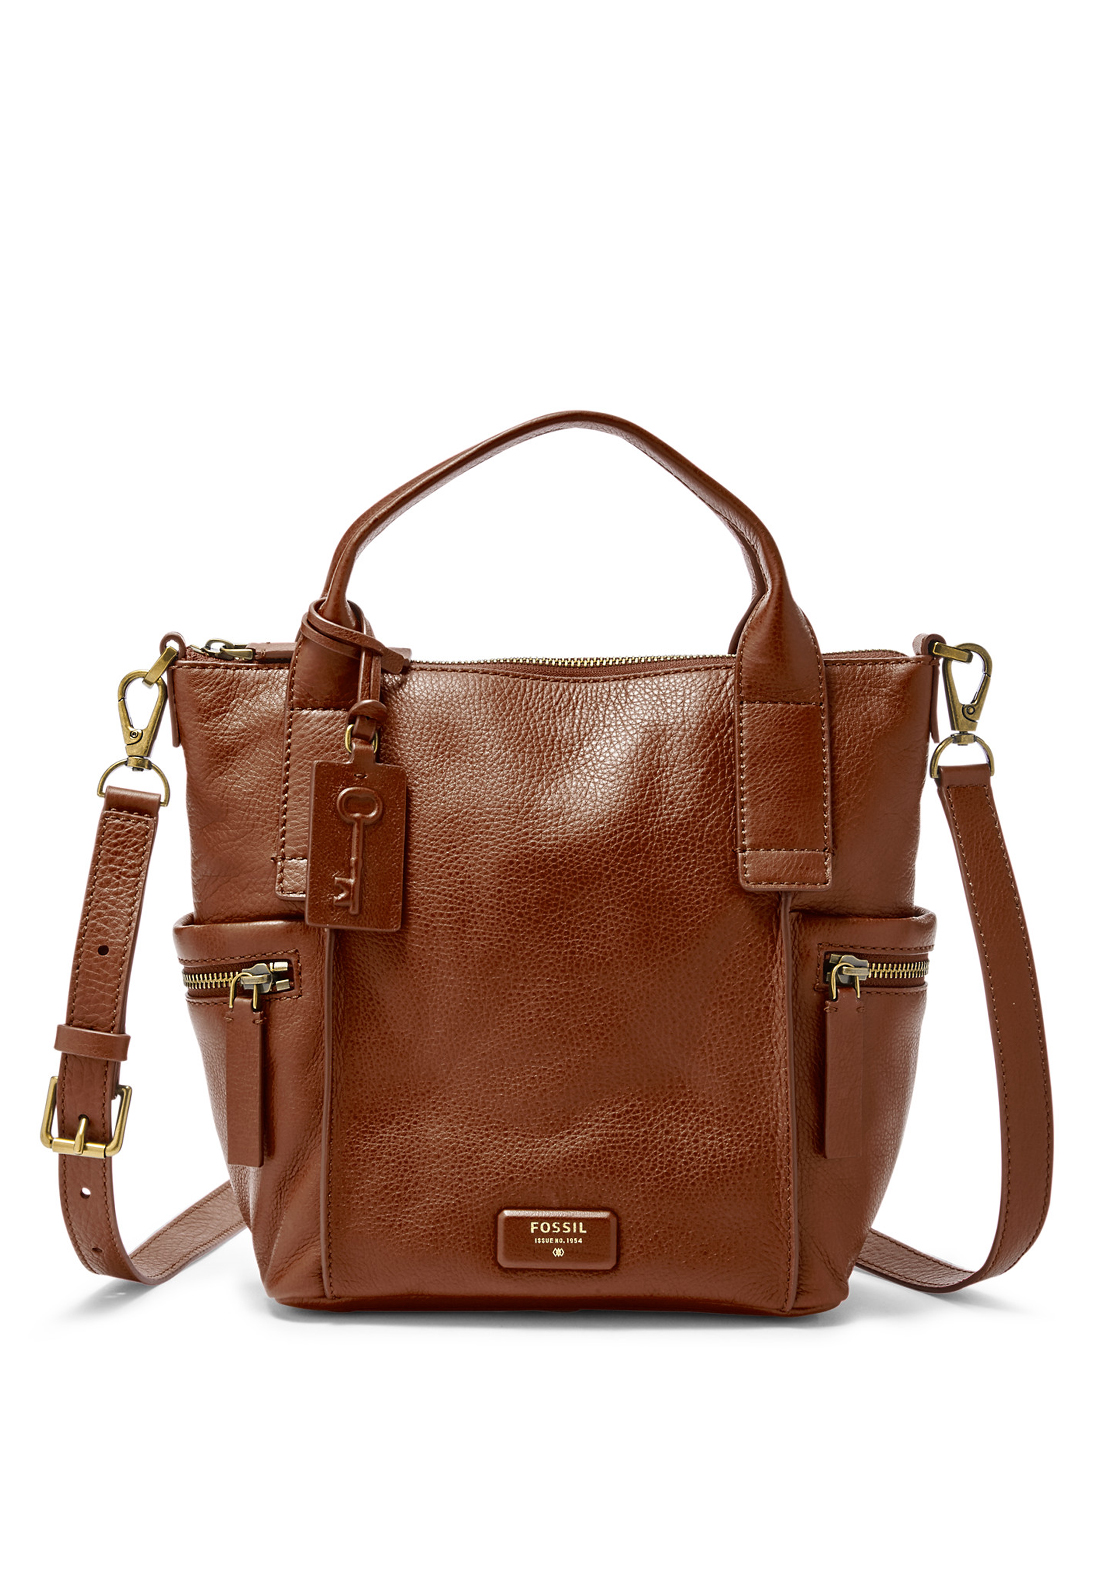 Fossil Emerson Medium Leather Satchel Bag, Brown